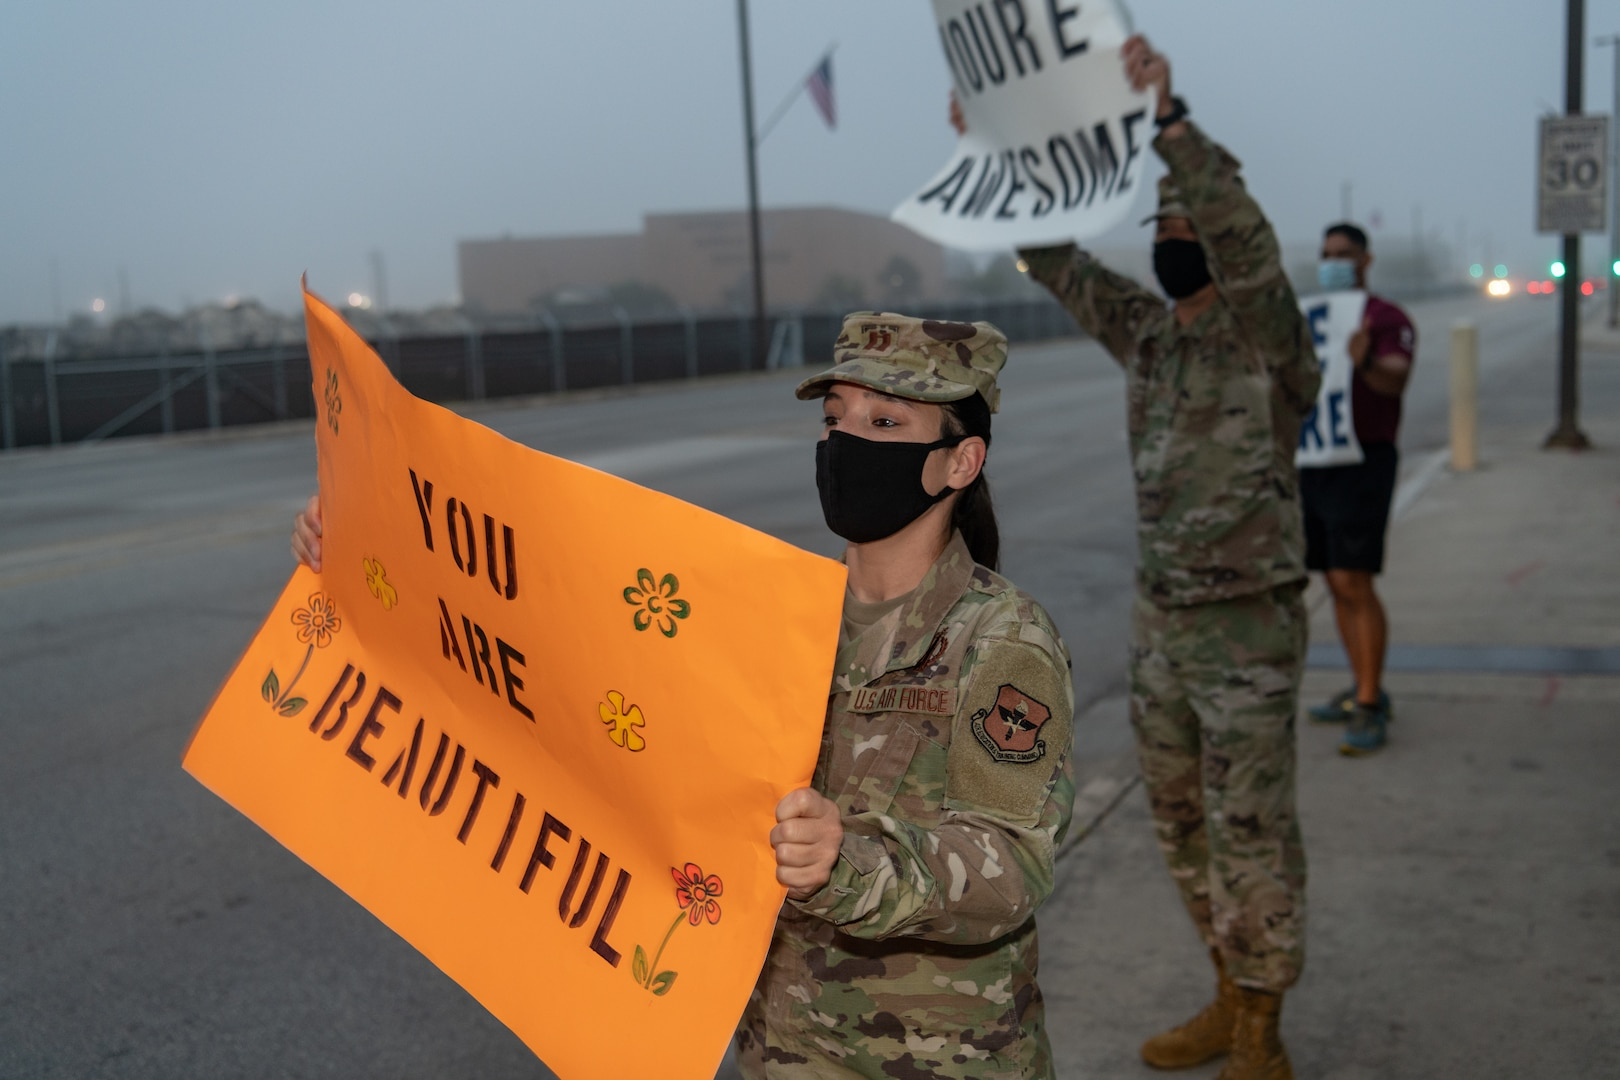 U.S. Air Force Capt. Brandy Dorrough (front), assistant director of the 323rd Training Squadron, and Tech Sgt. Lee Fast, interim 1st Sgt. for the 323rd Training Squadron, greet cars during the We Care Day event, April 16th, 2021, at Joint Base San Antonio-Lackland, Texas.